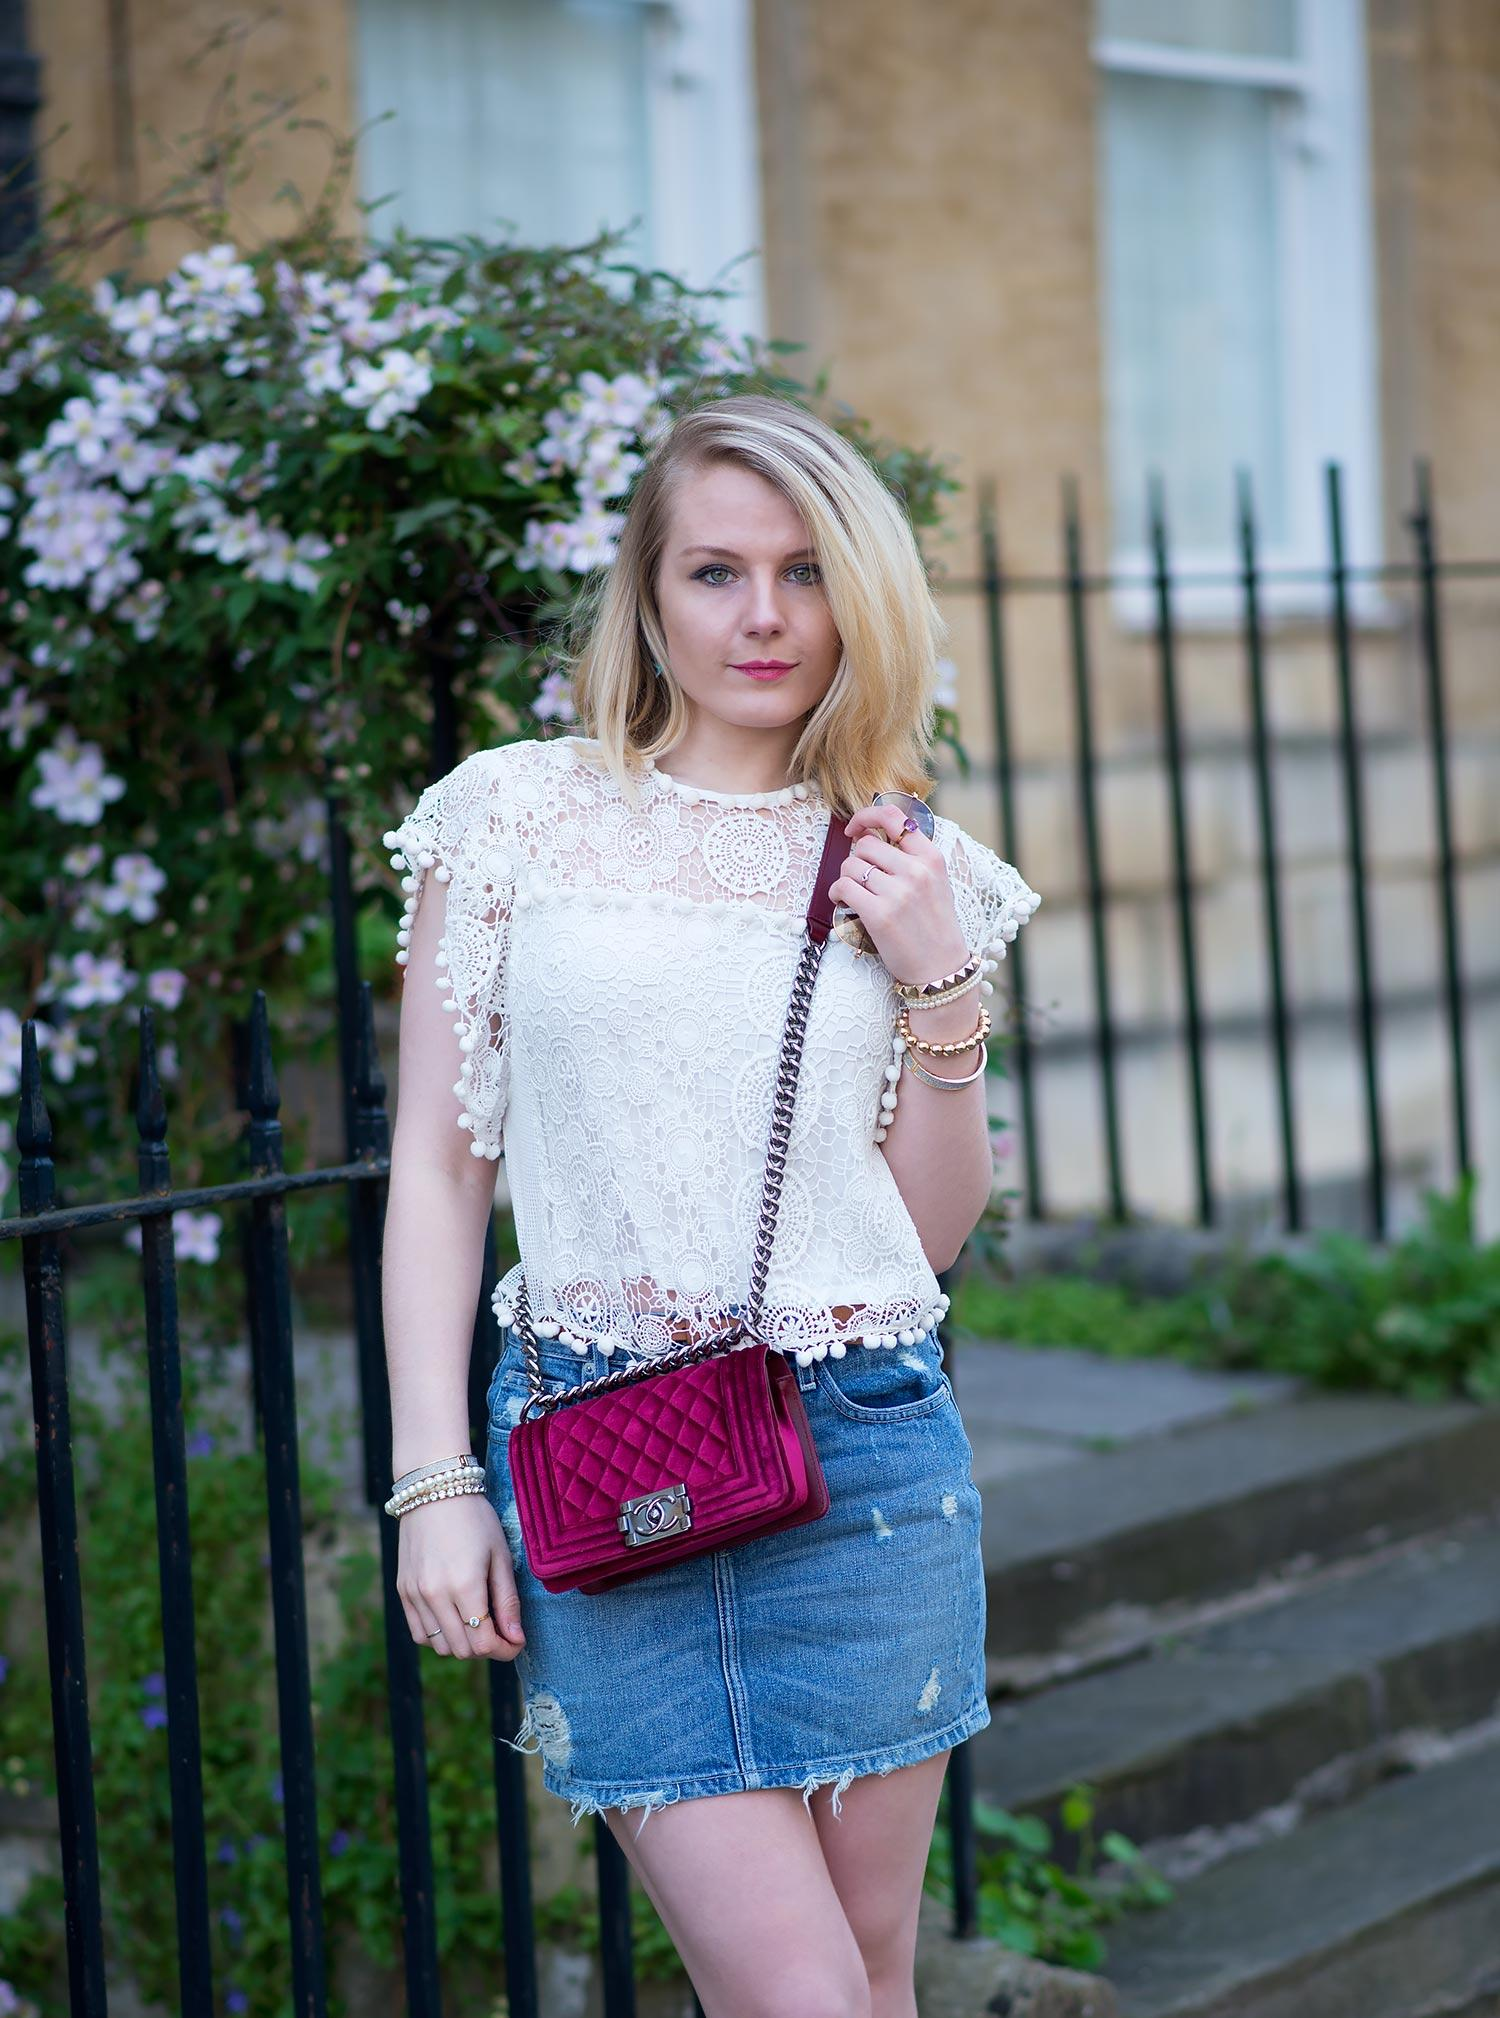 lorna burford fashion blogger lace top with denim mini skirt